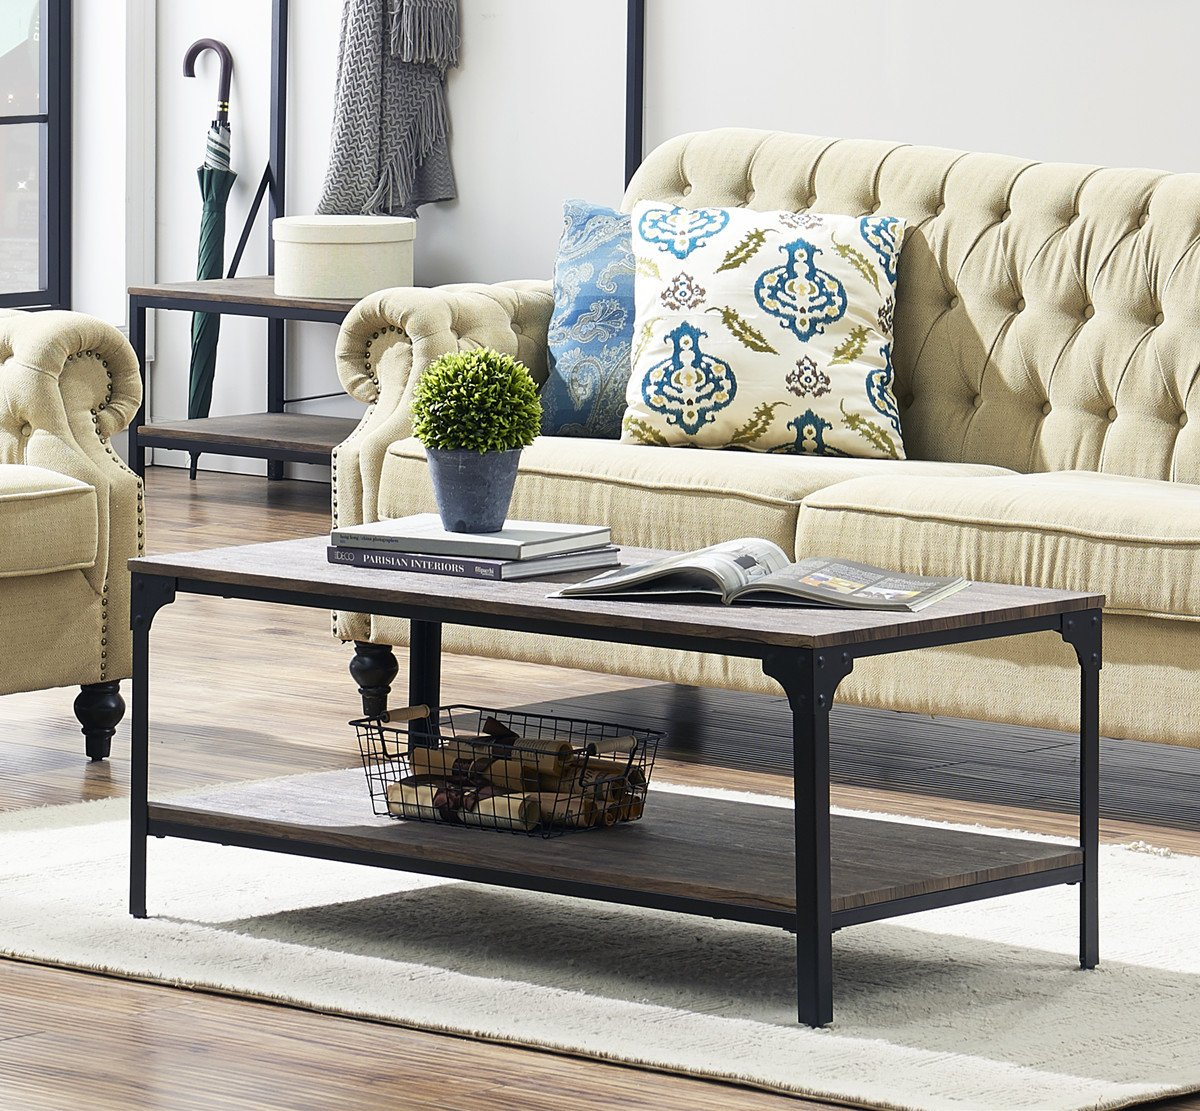 O&K Furniture Rustic Rectangular Coffee Table with Open Bottom Shelf, Industrial Cocktail Table for Living Room, Gray-Brown